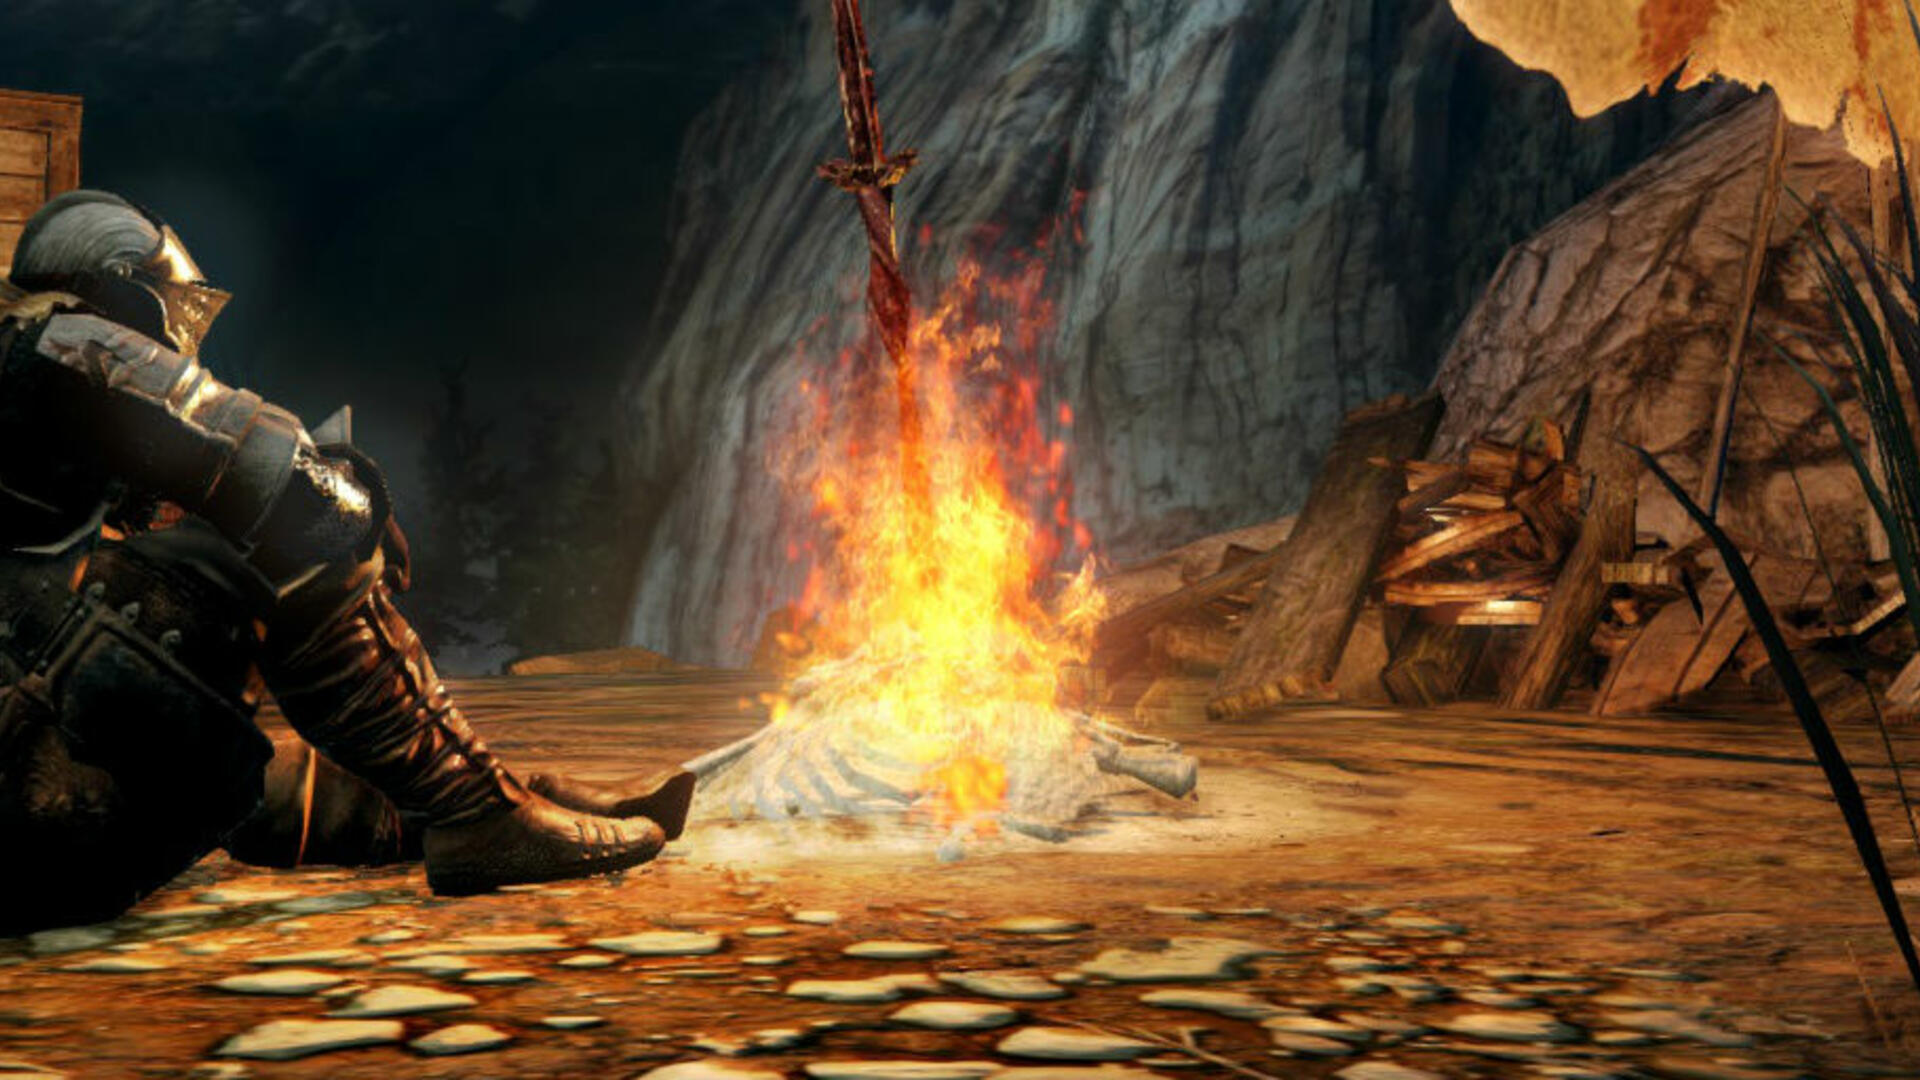 Dark Souls 2 Guide: Entering Drangleic Castle and Heading for the Dragonriders